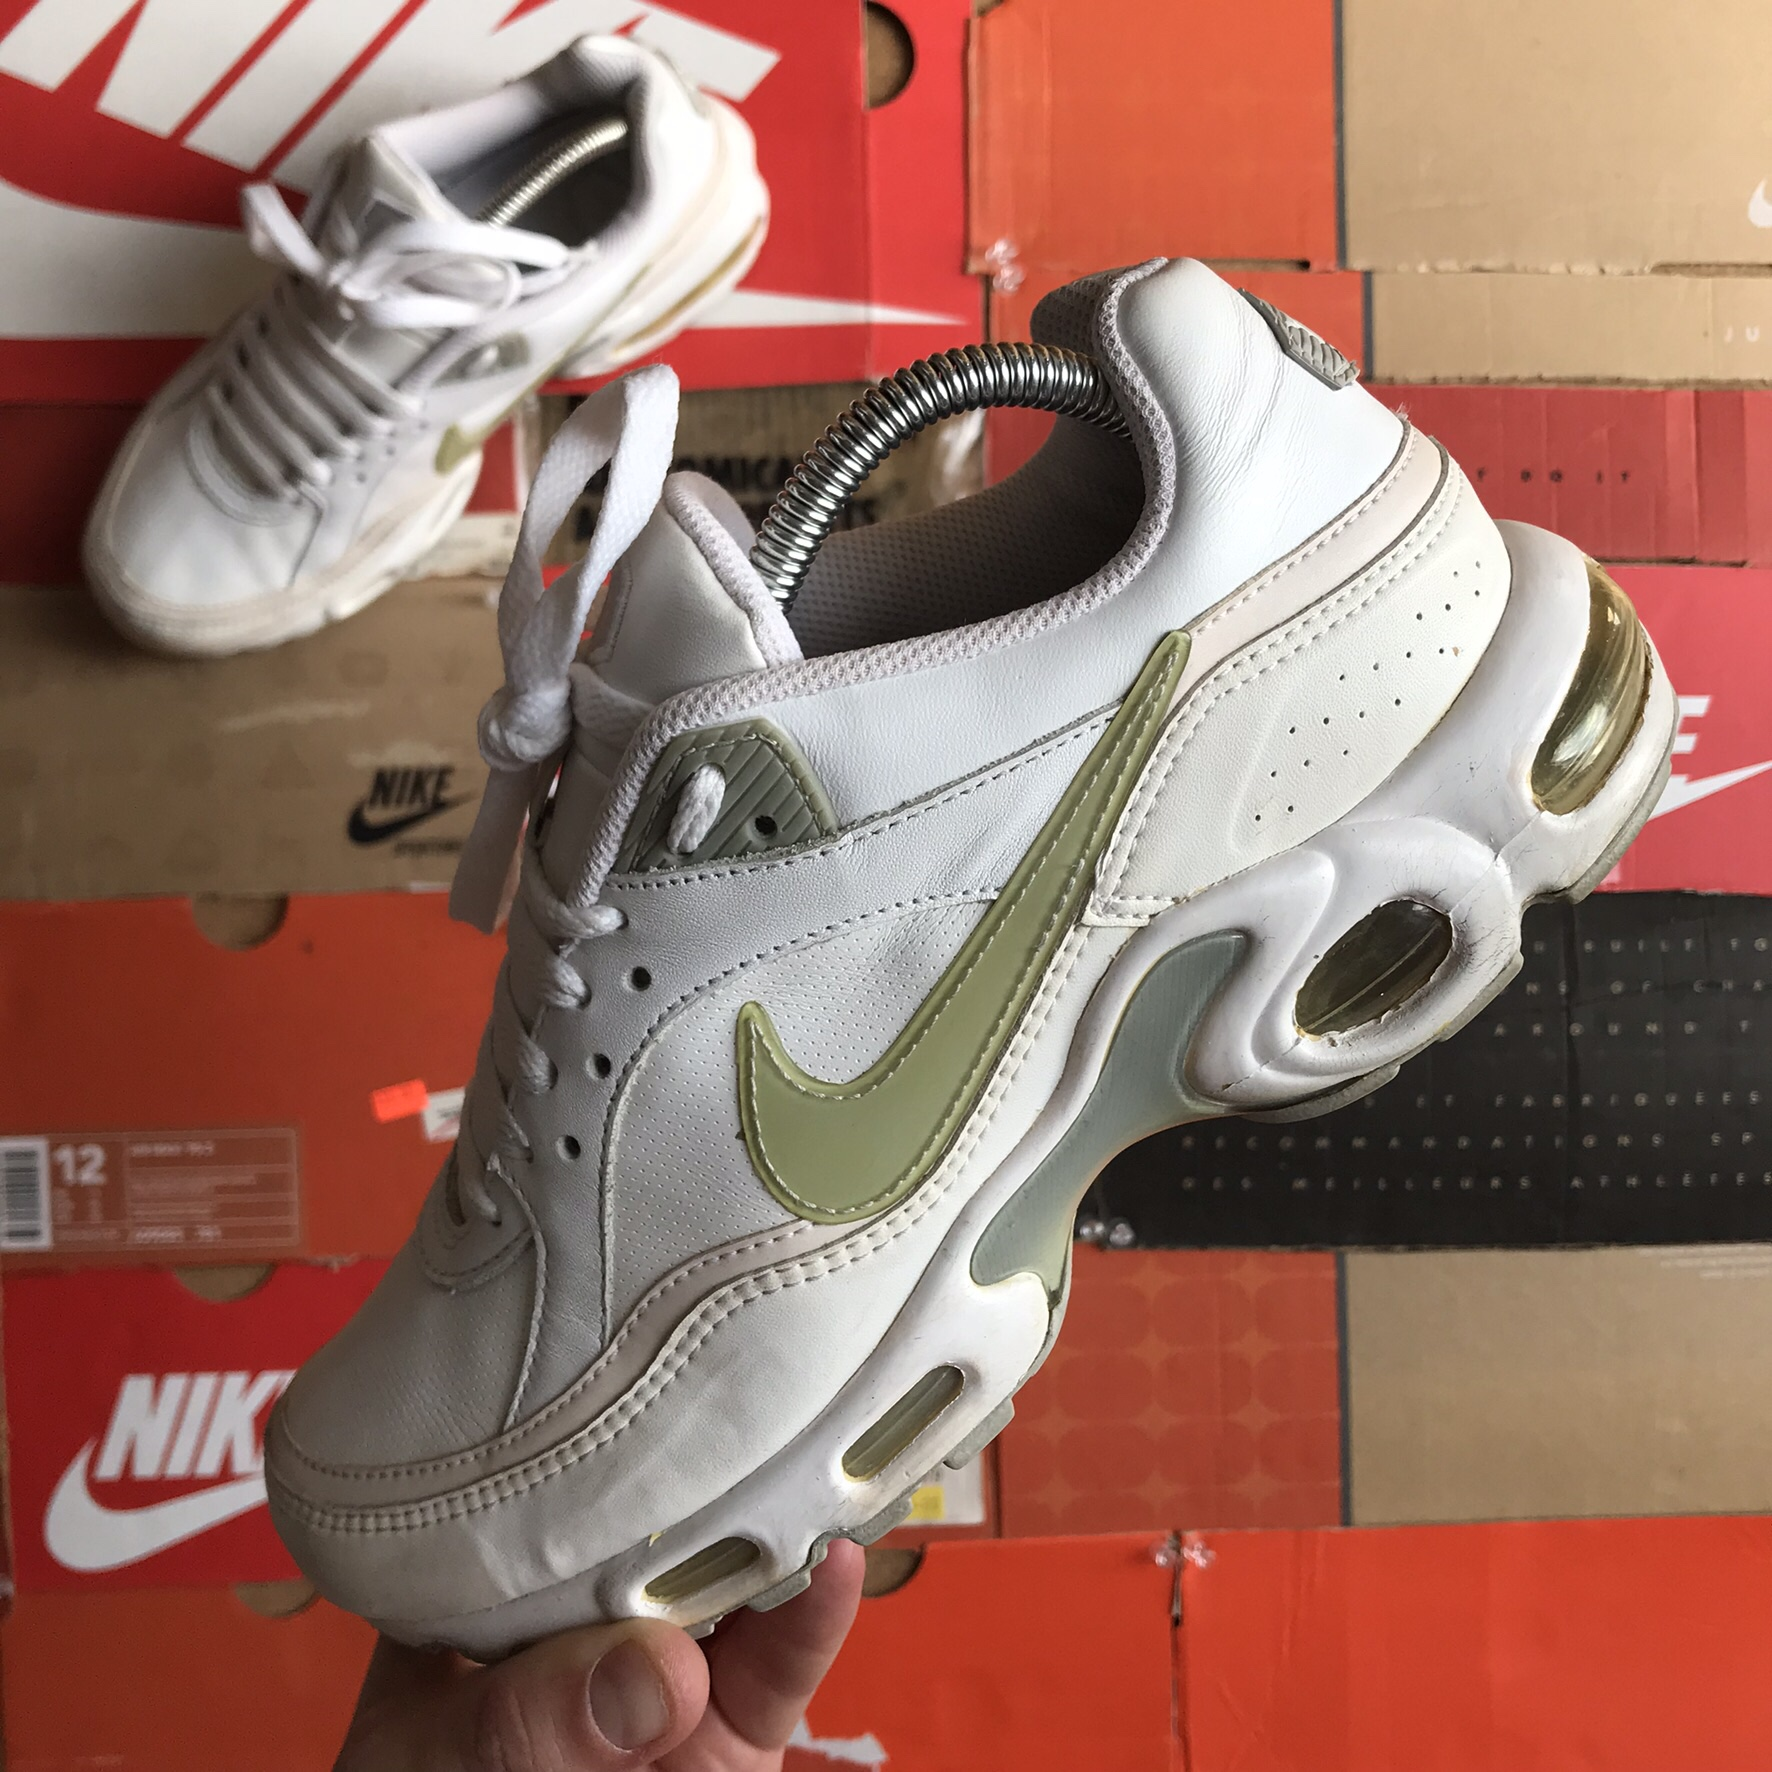 finest selection 02cad c0150 Nike Air Max Plus TN Classic Size: 6.5uk Condition:... - Depop